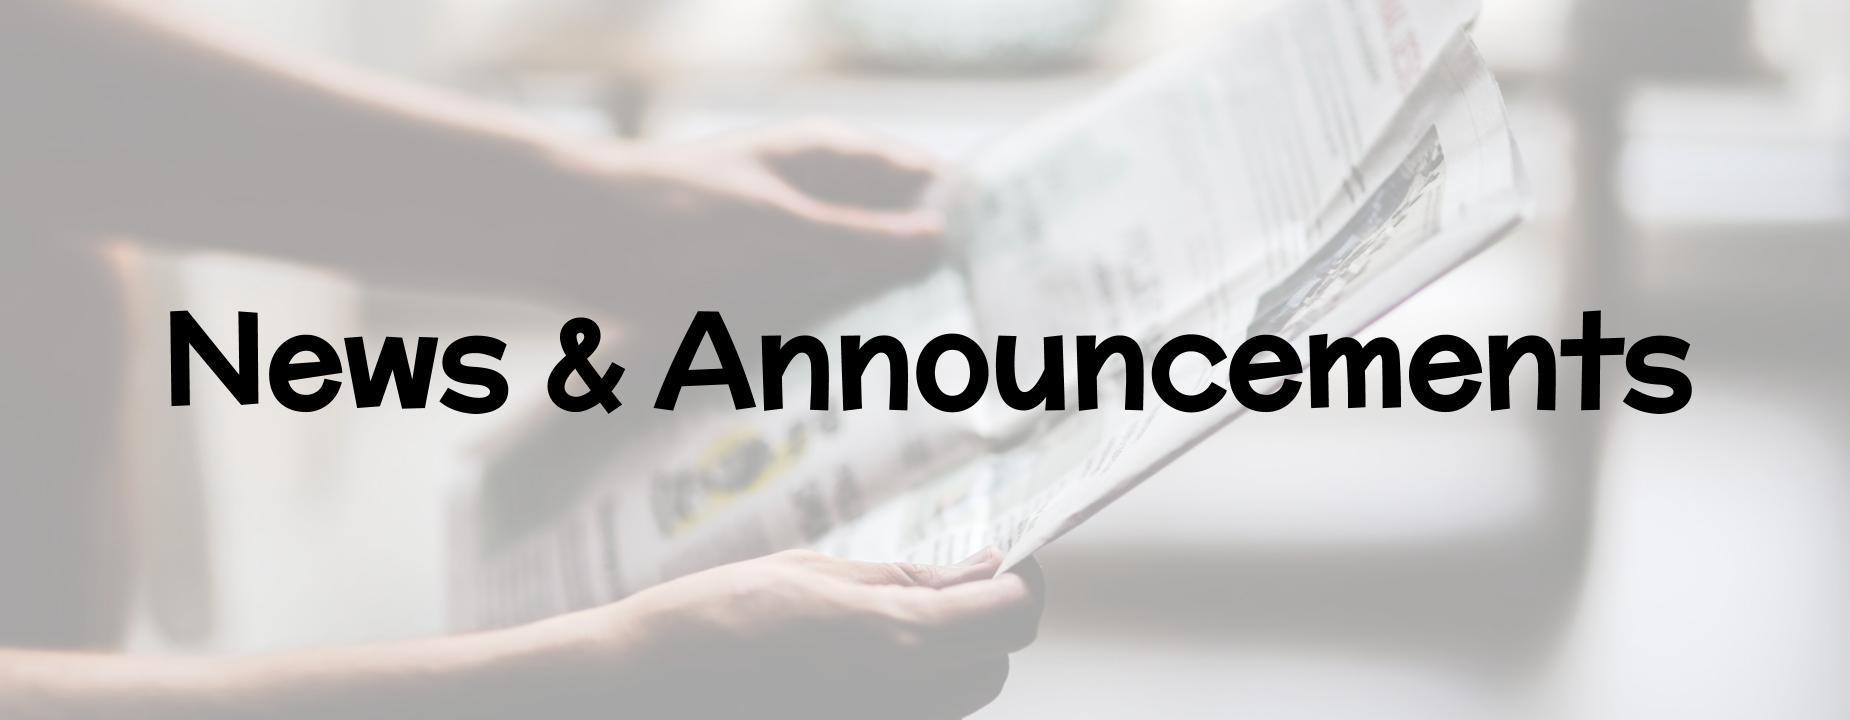 Link to News and Announcements